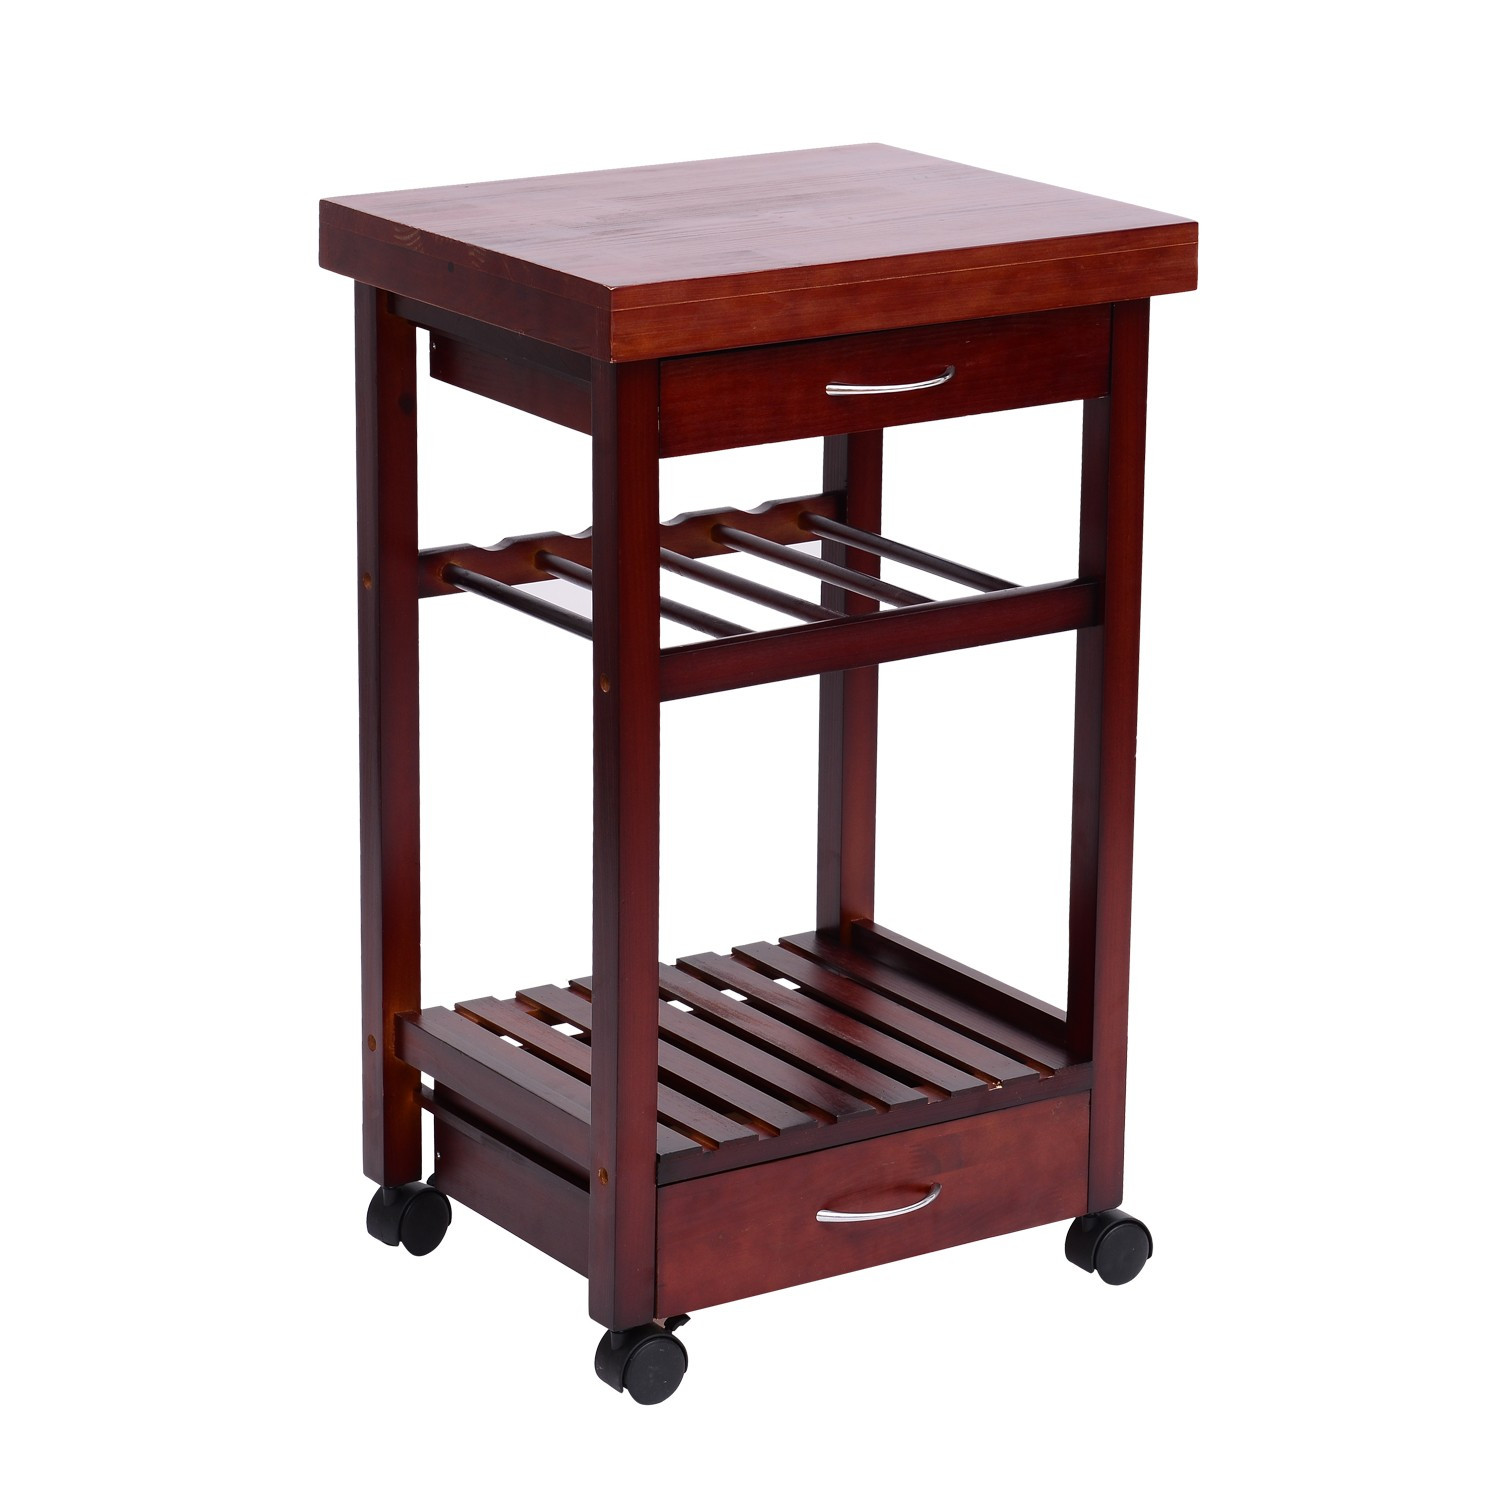 "Best ideas about Kitchen Cart With Wine Rack . Save or Pin Hom 32"" Wooden Storage Rolling Kitchen Cart Trolley Now."